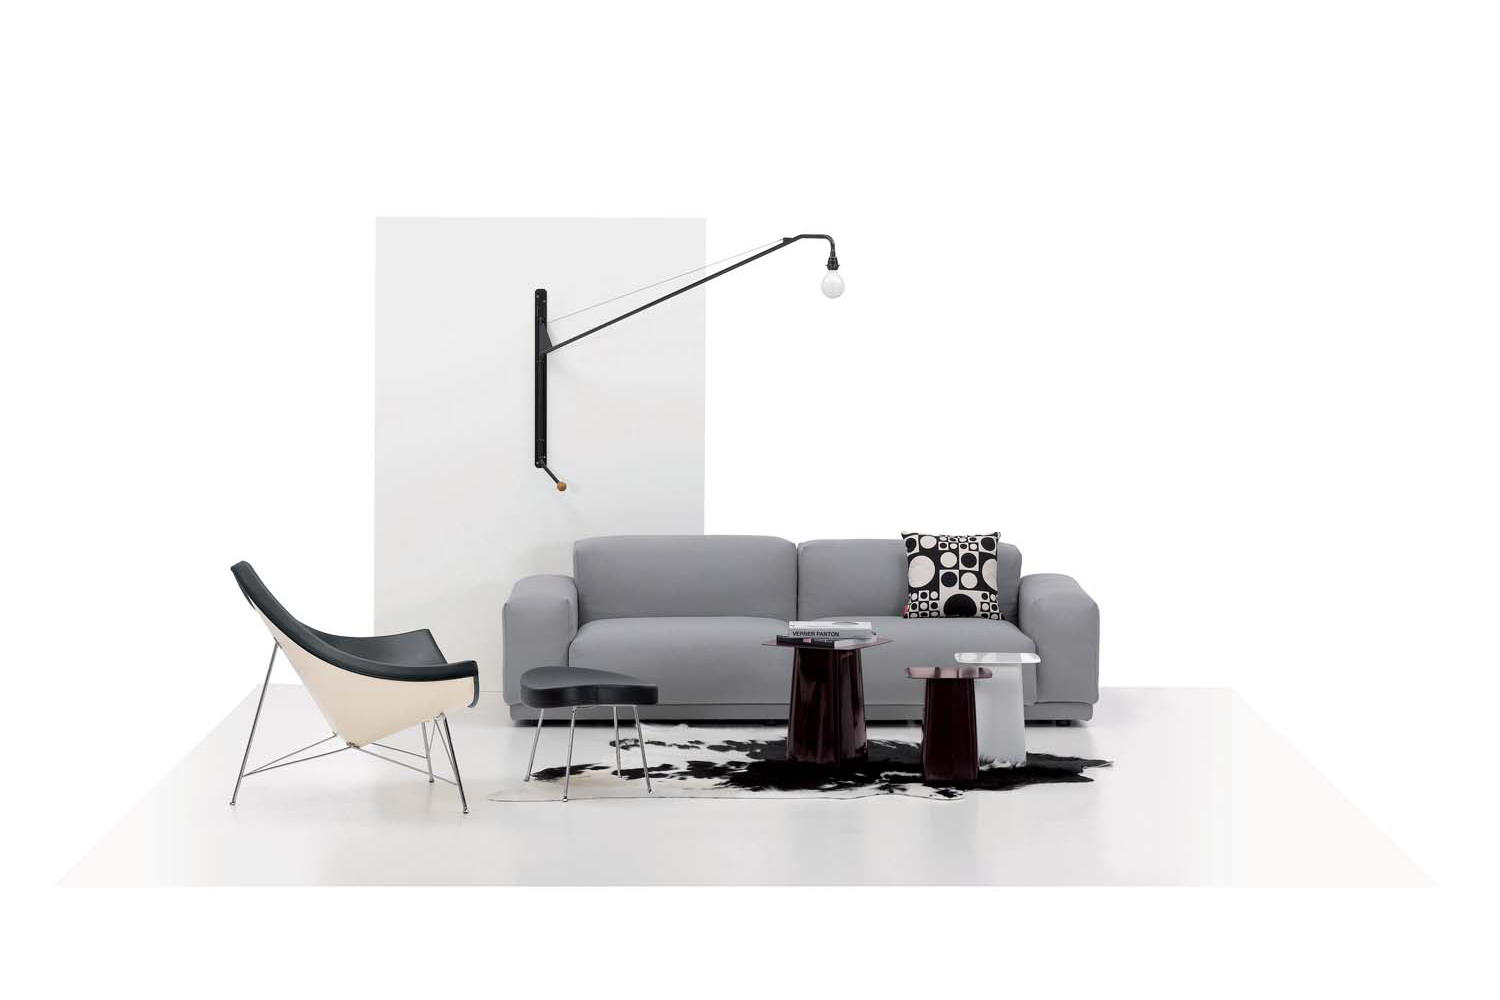 potence clairage g n ral de vitra architonic. Black Bedroom Furniture Sets. Home Design Ideas